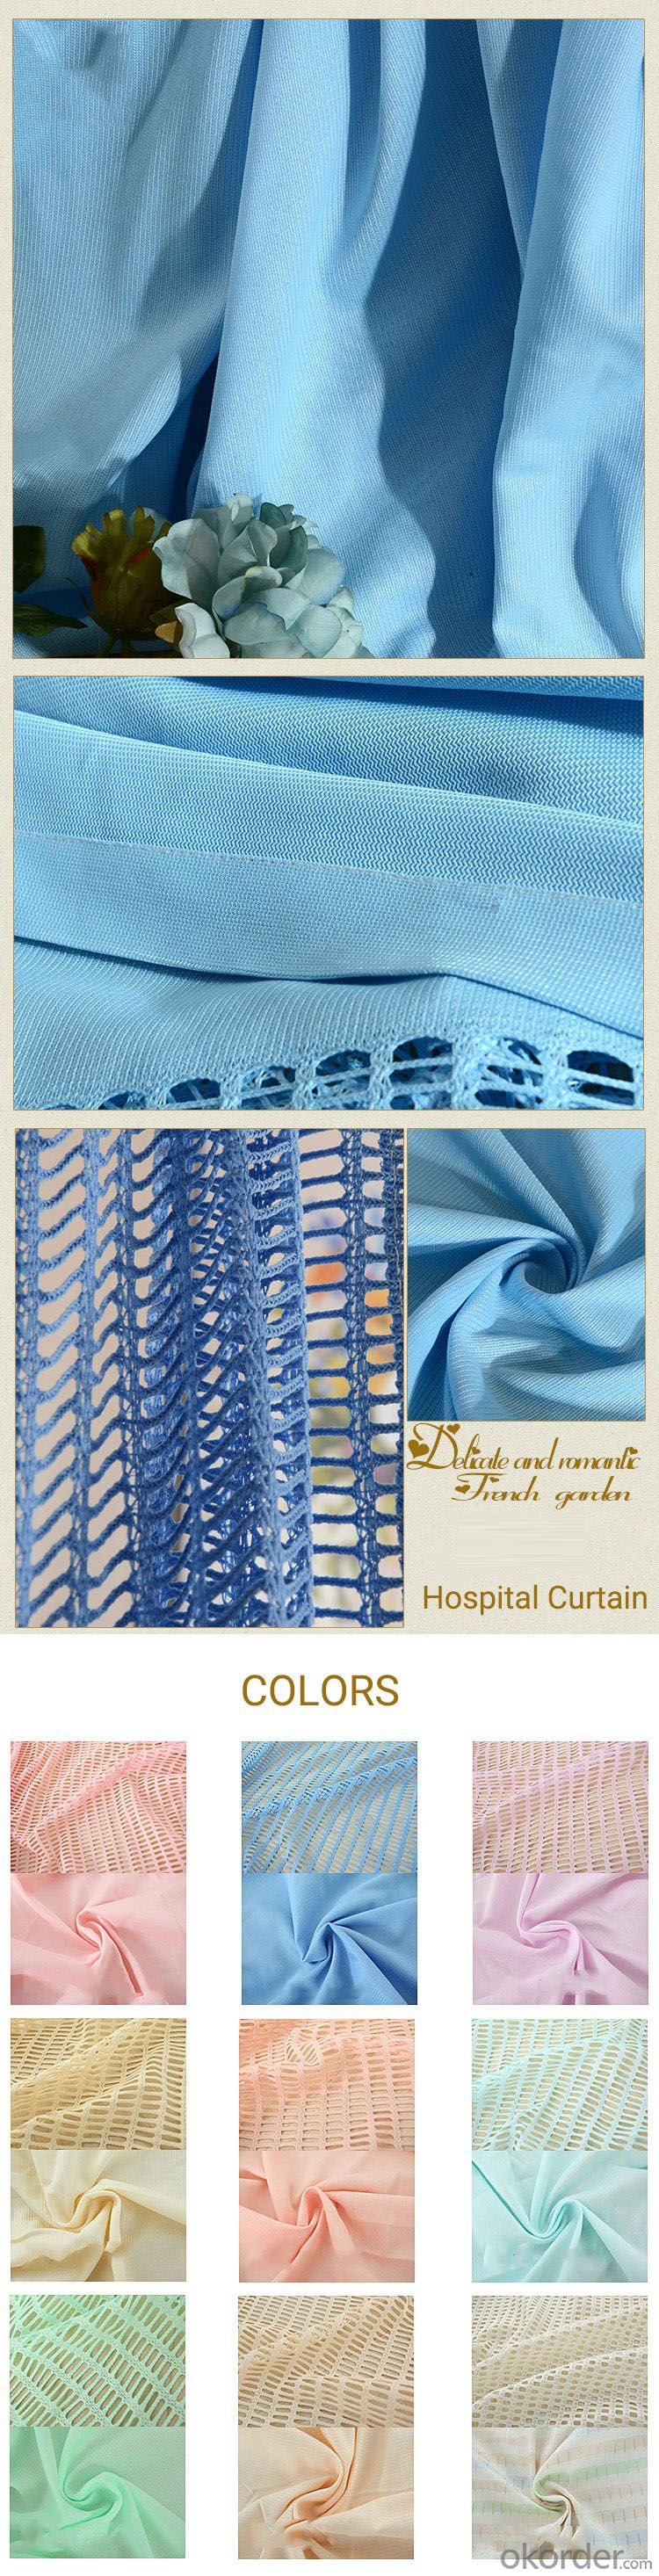 Guangzhou wholesale blue bed cubicle partition medical curtain antibacterial hospital curtain